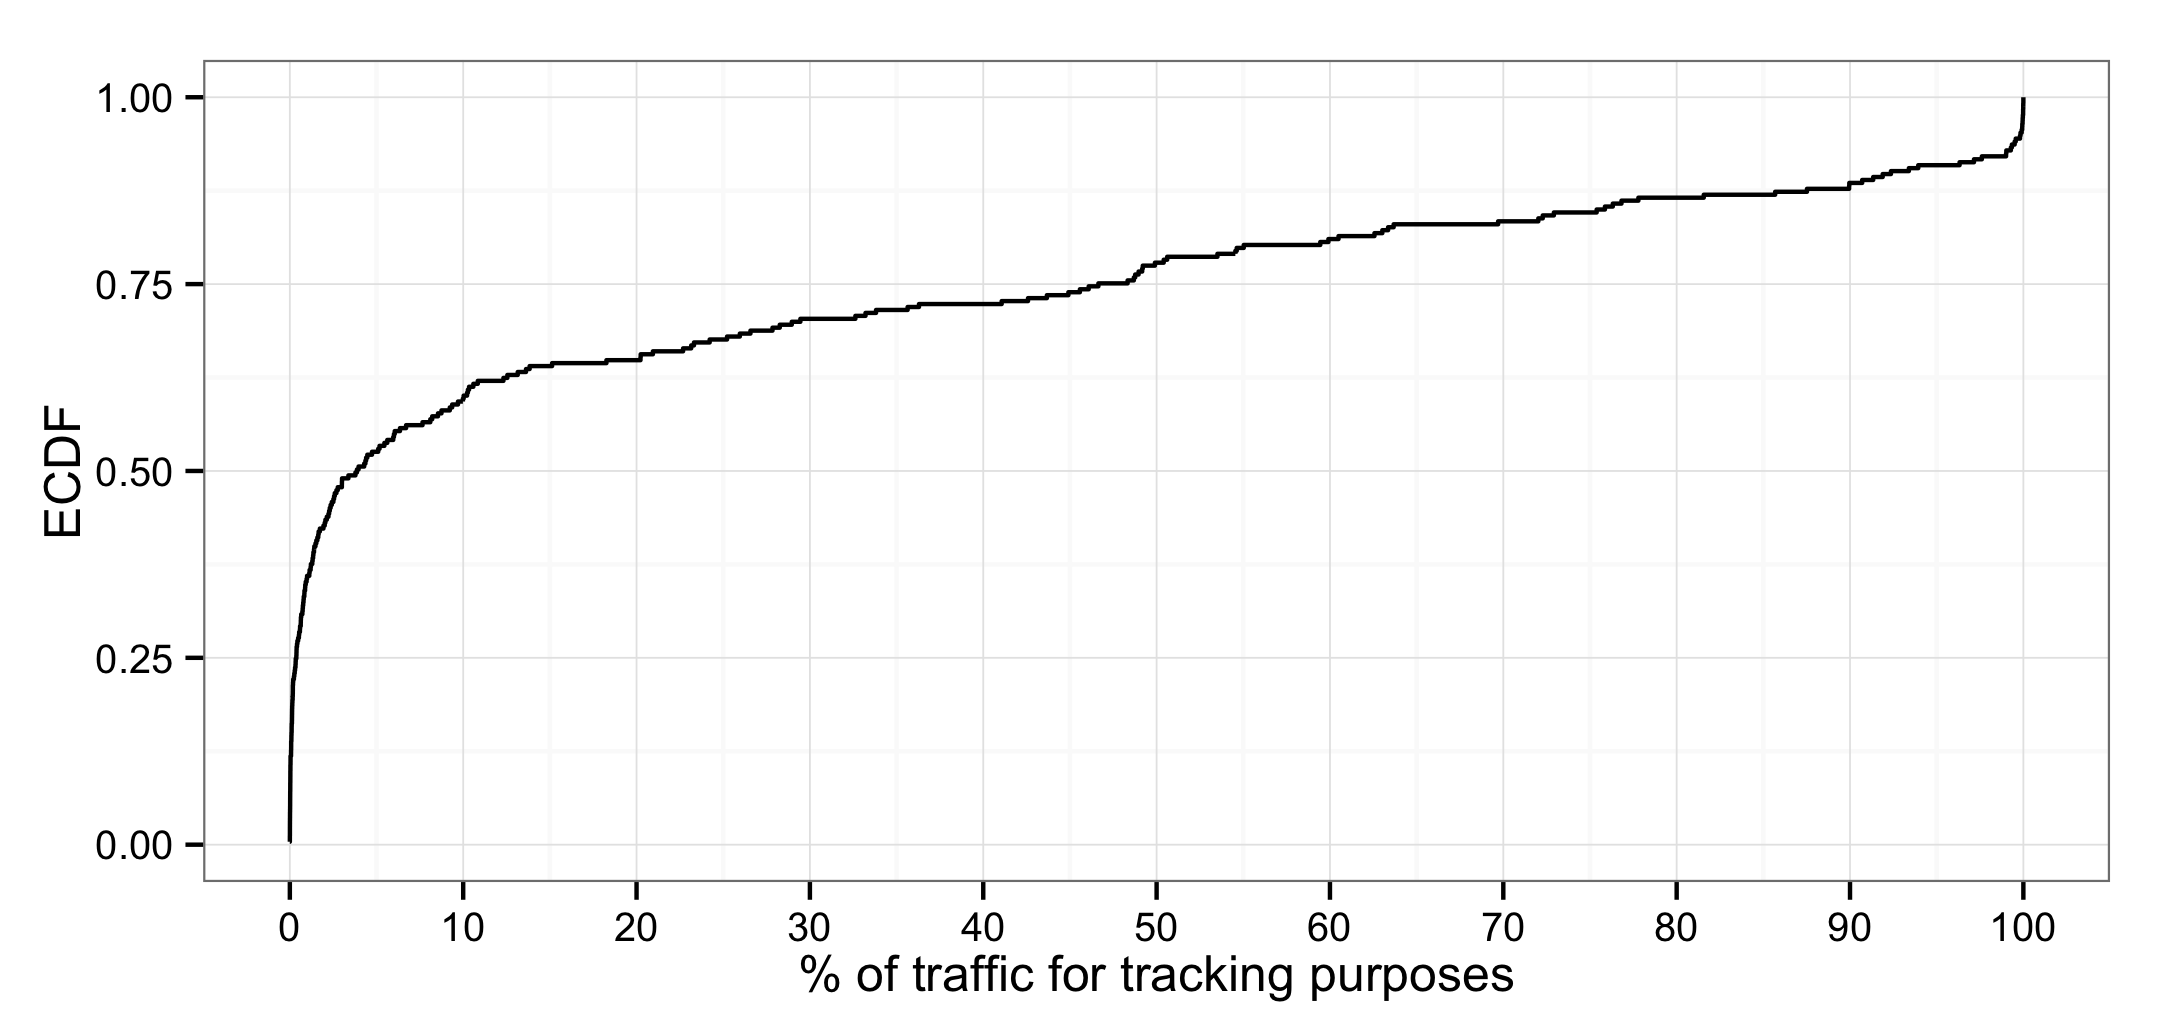 Histogram tracking traffic for tracking purposes per app